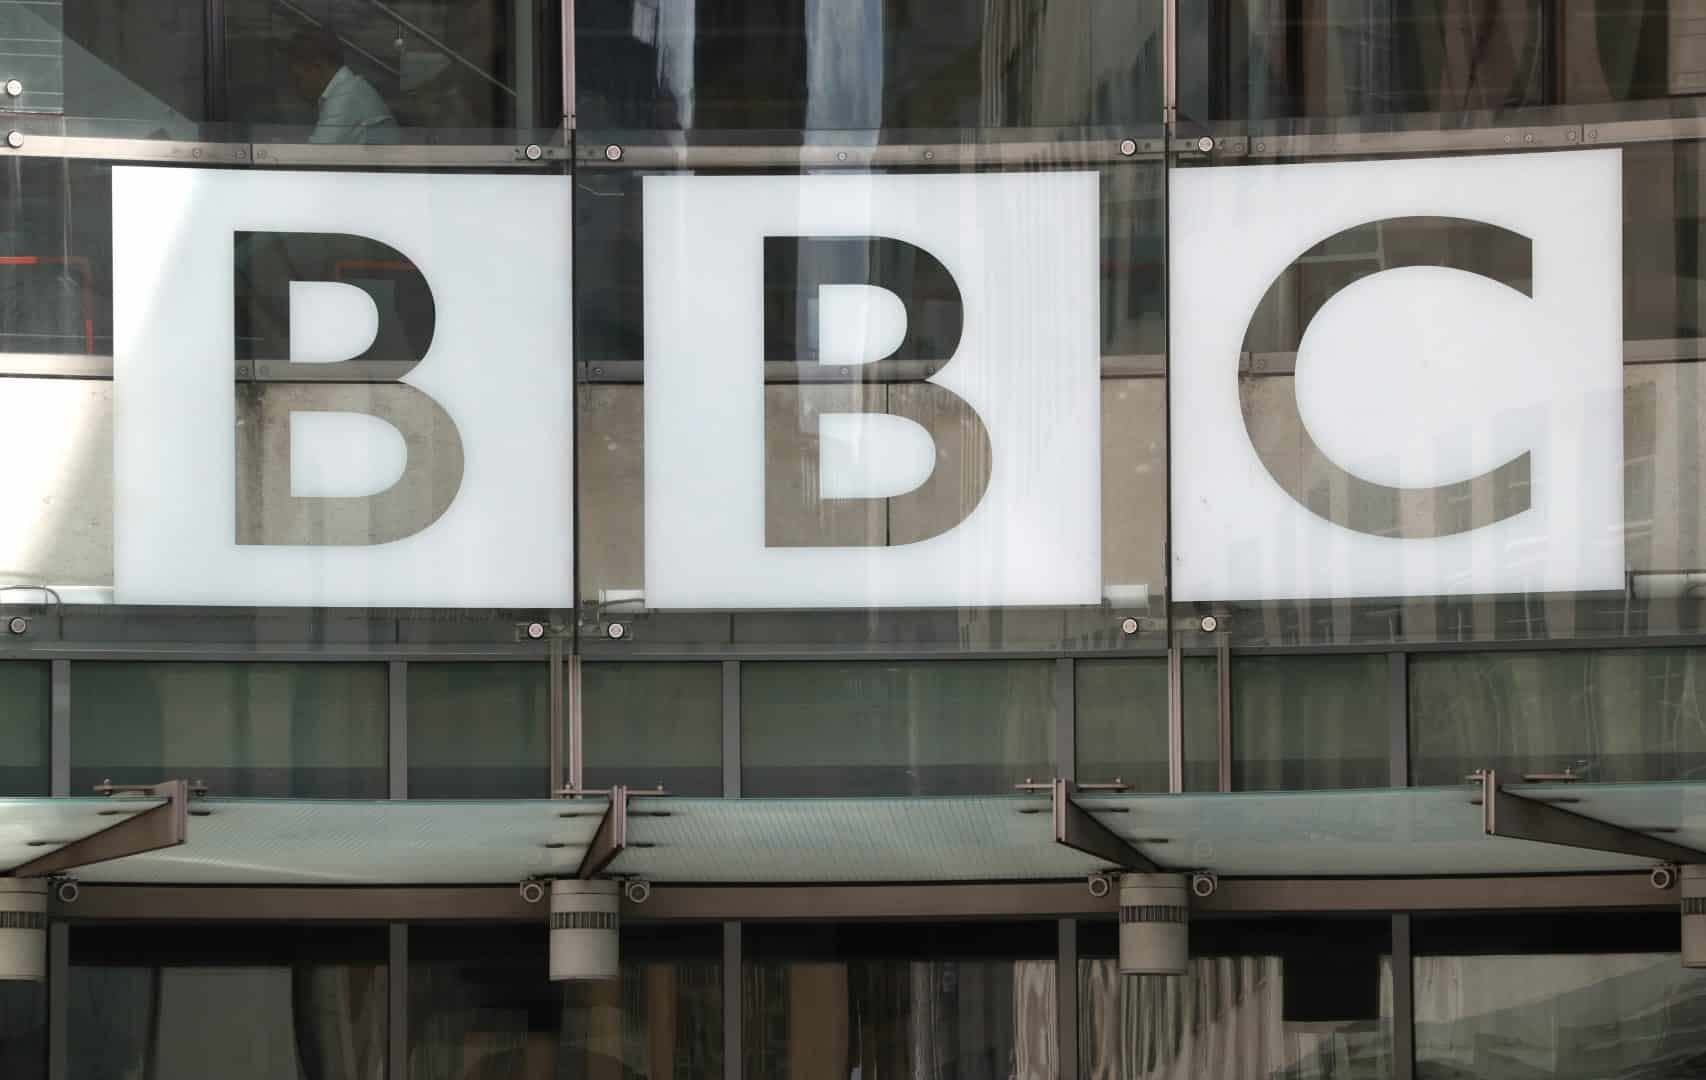 PM Johnson questions BBC's licence fee funding